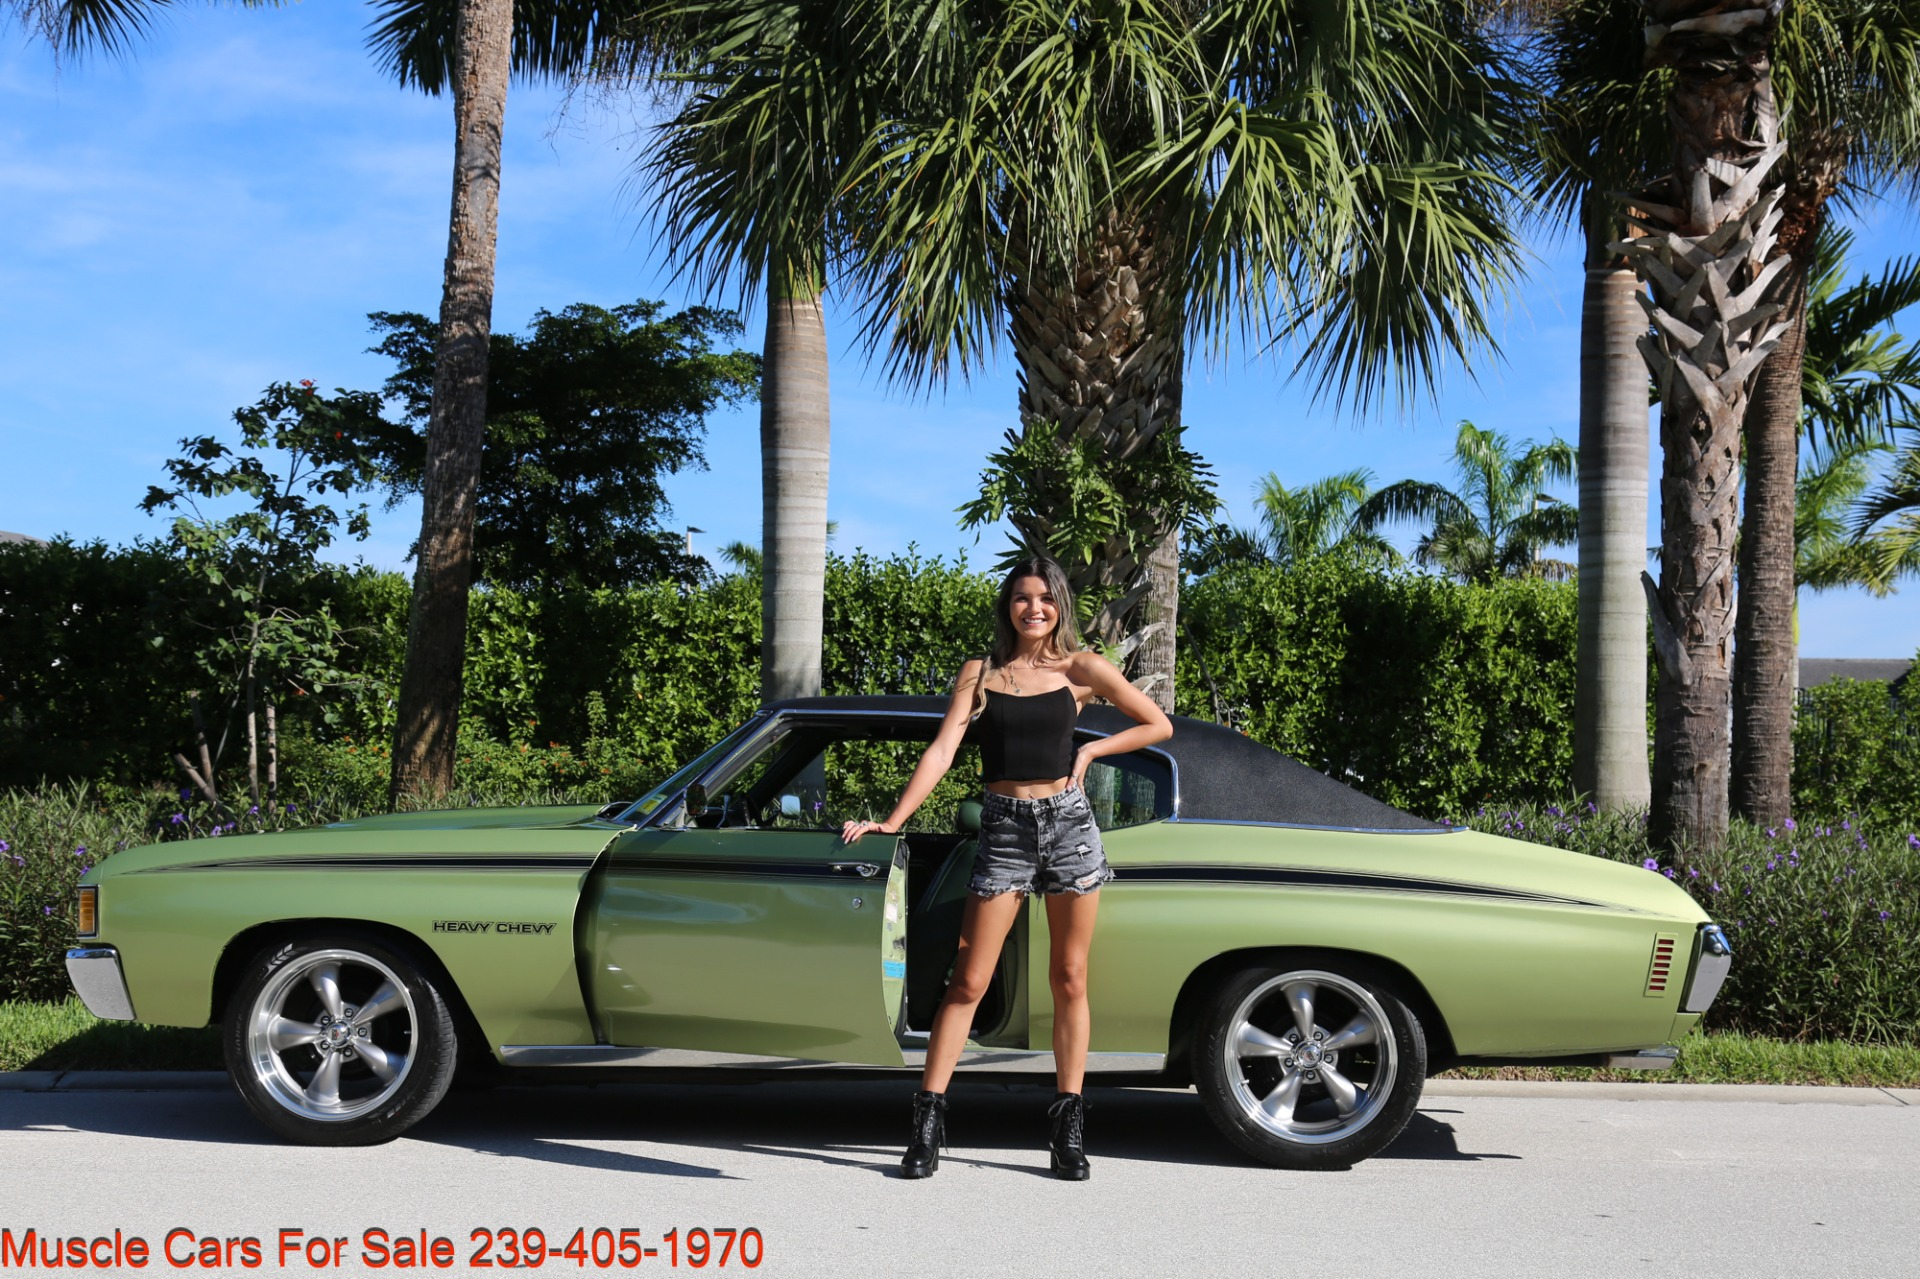 Used 1972 Chevrolet Chevelle Heavy Chevy Trim for sale $34,000 at Muscle Cars for Sale Inc. in Fort Myers FL 33912 8